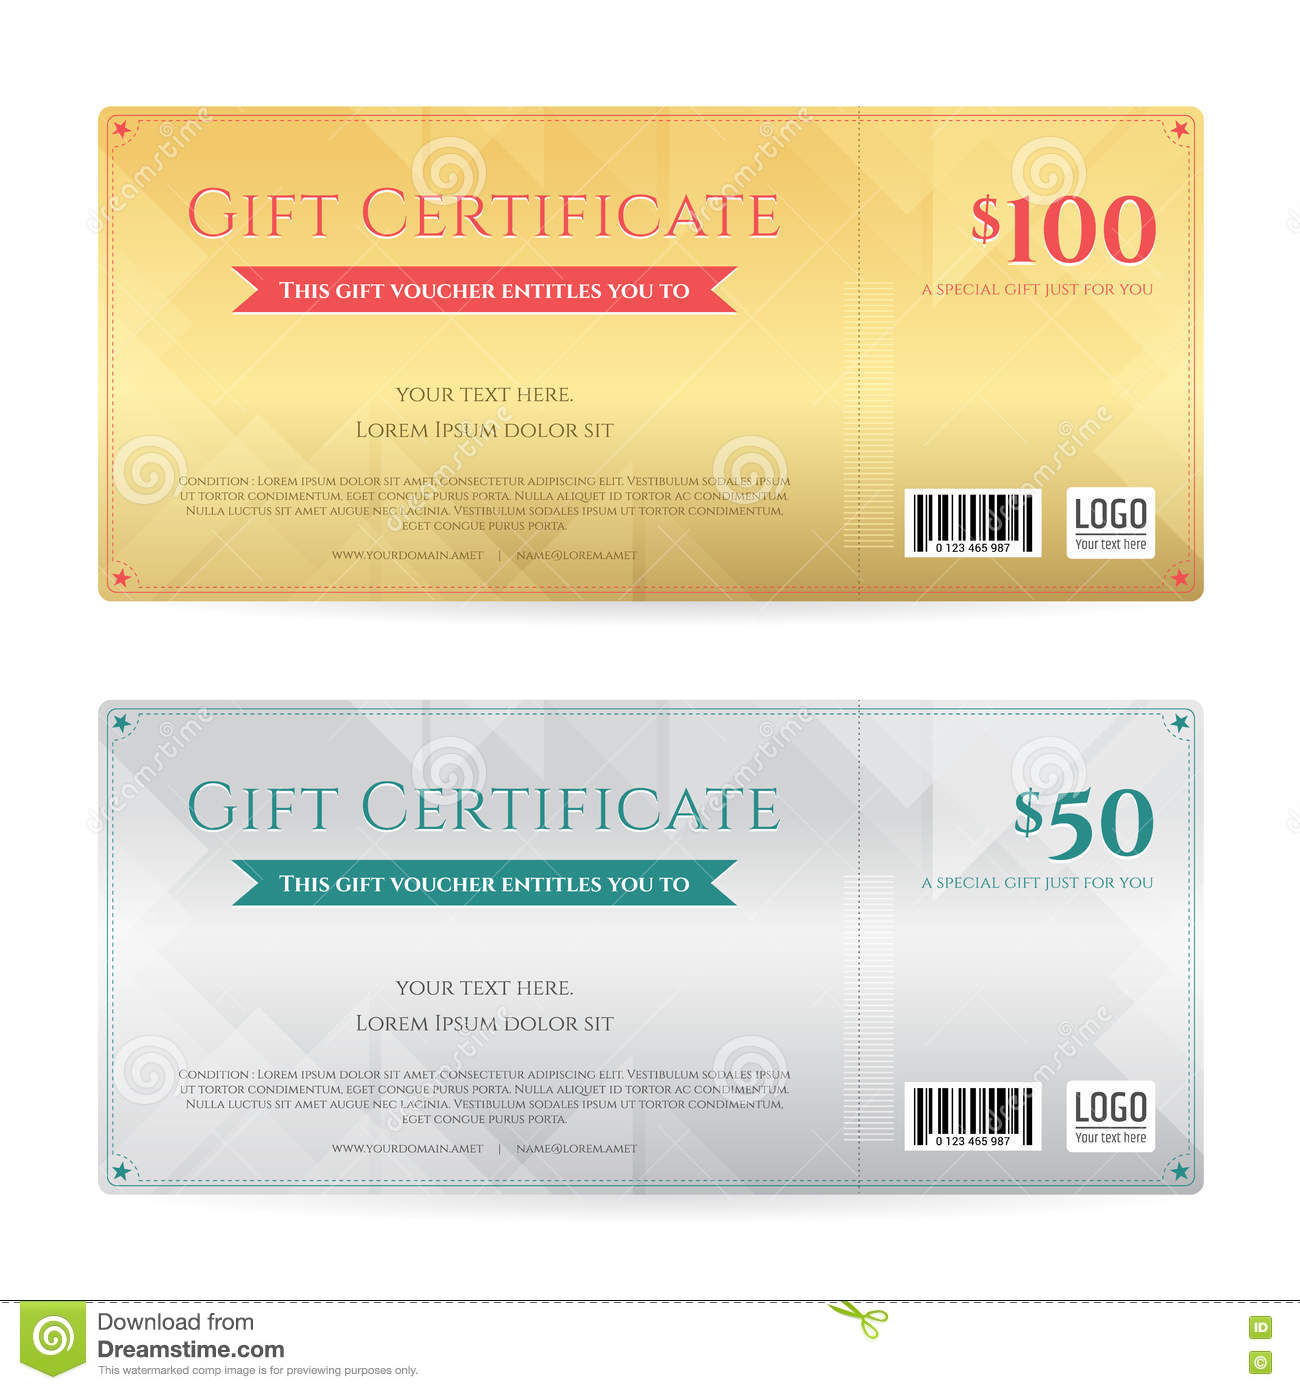 gift voucher or gift certificate template in luxury theme stock gift voucher or gift certificate template in luxury gold and sil royalty stock images